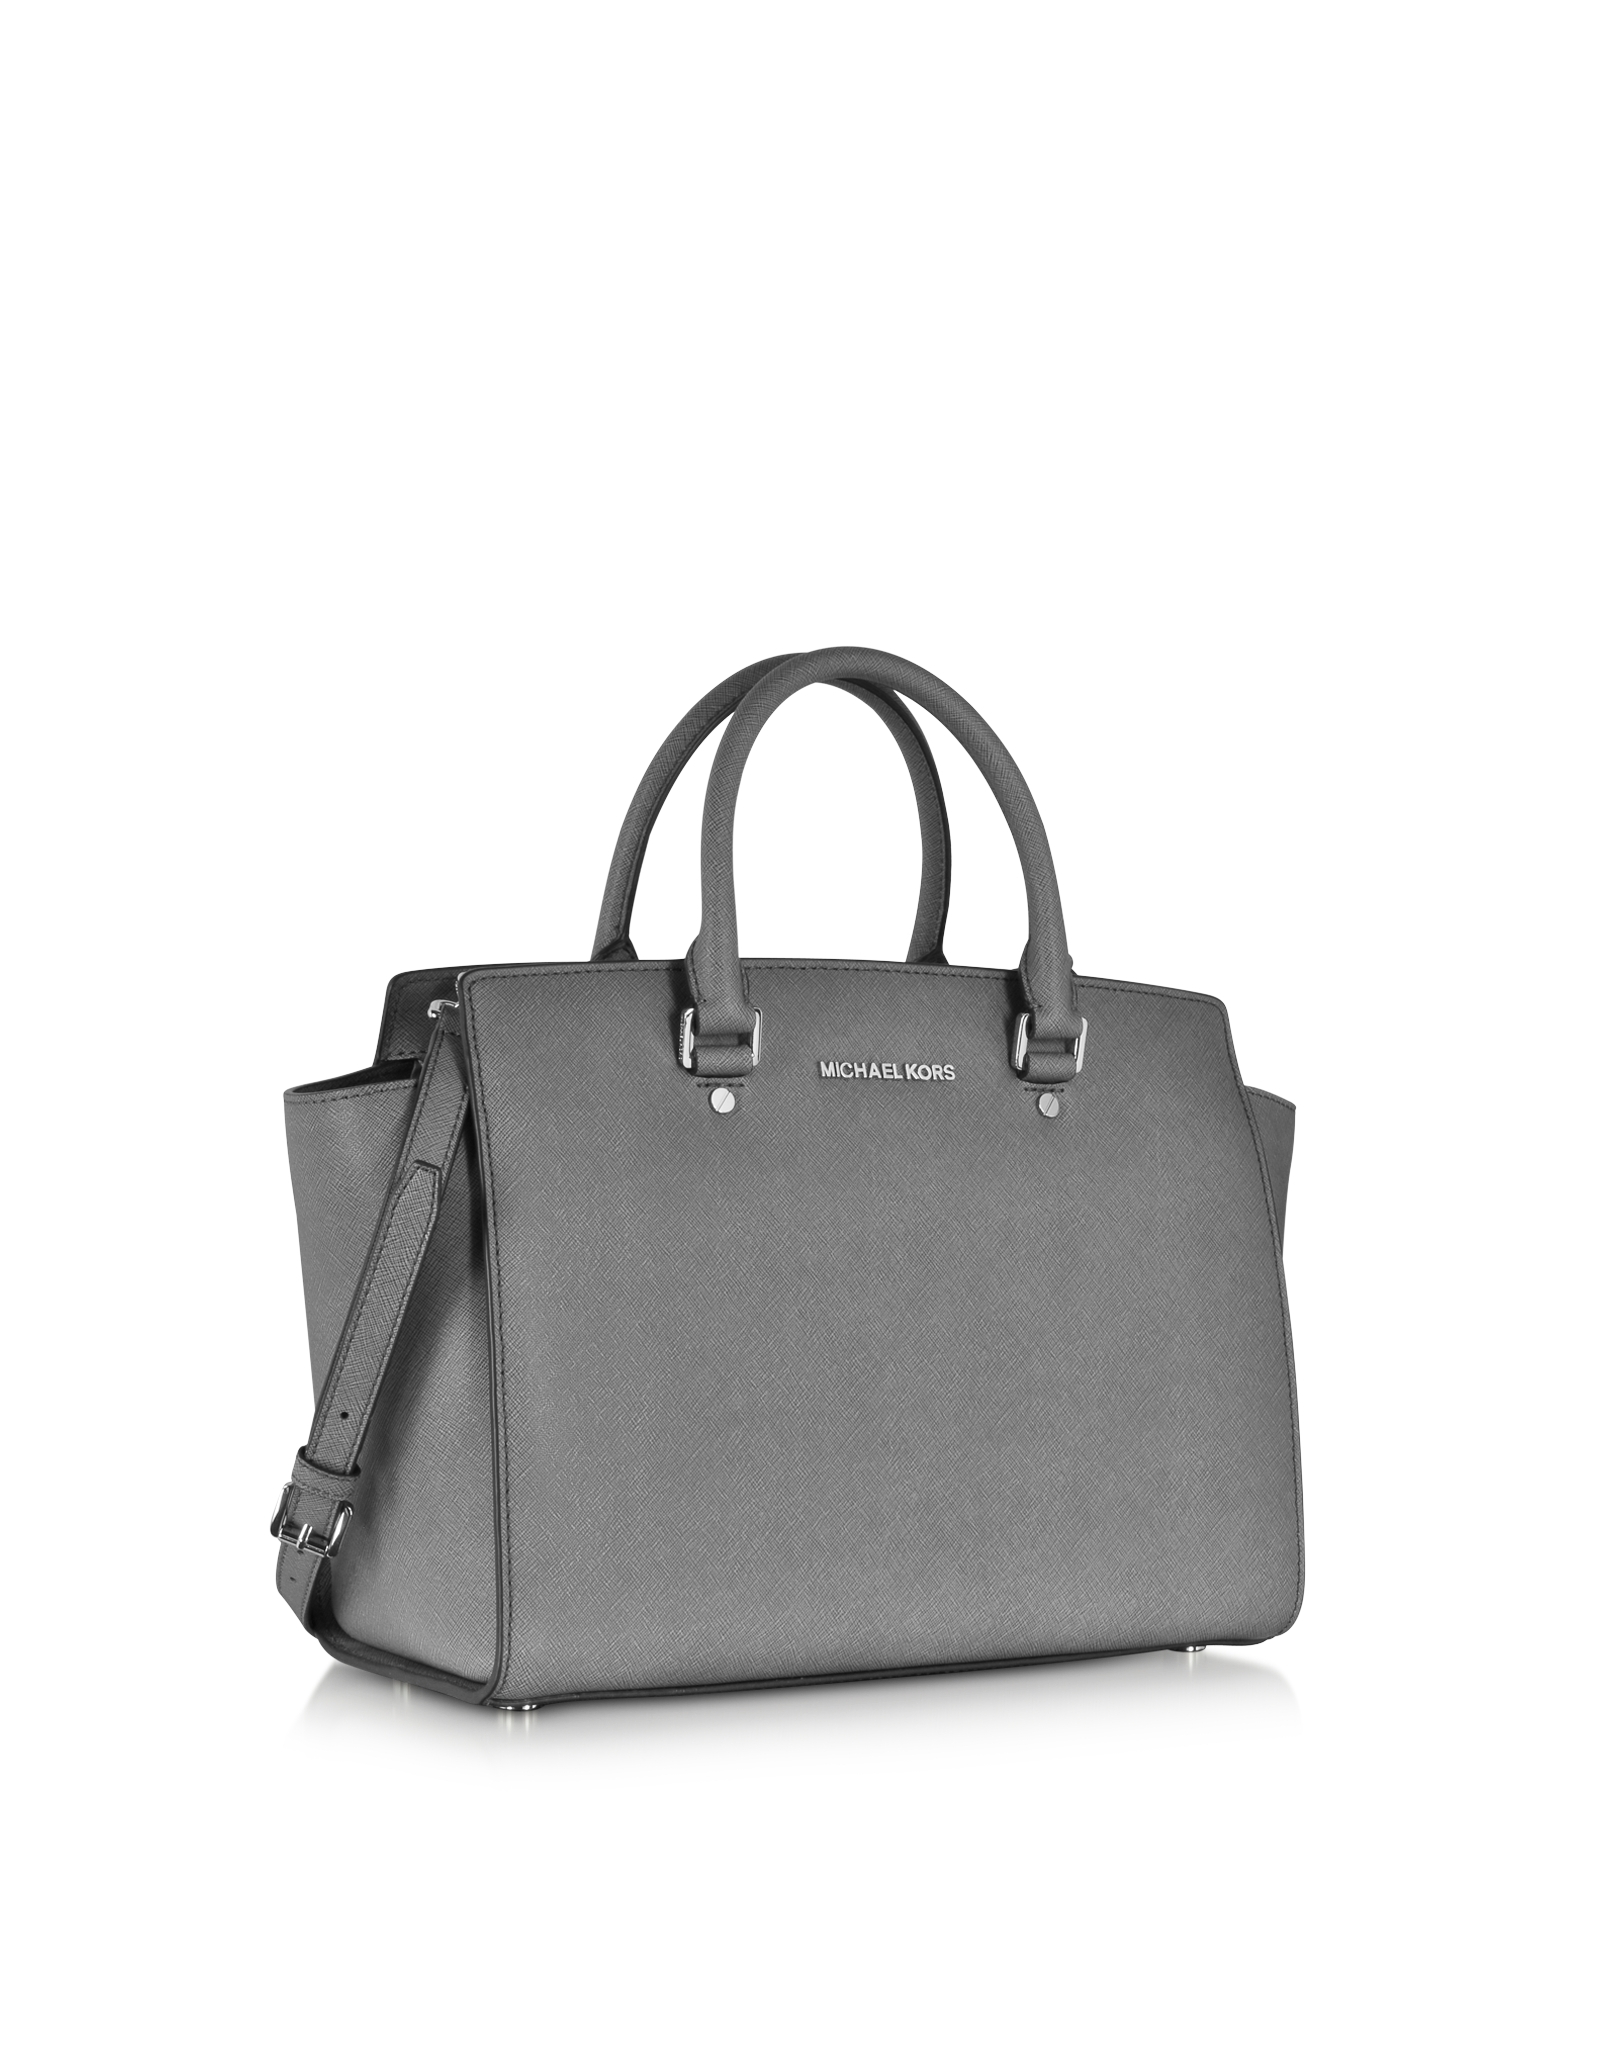 michael kors selma medium saffiano leather satchel in gray lyst rh lyst com au